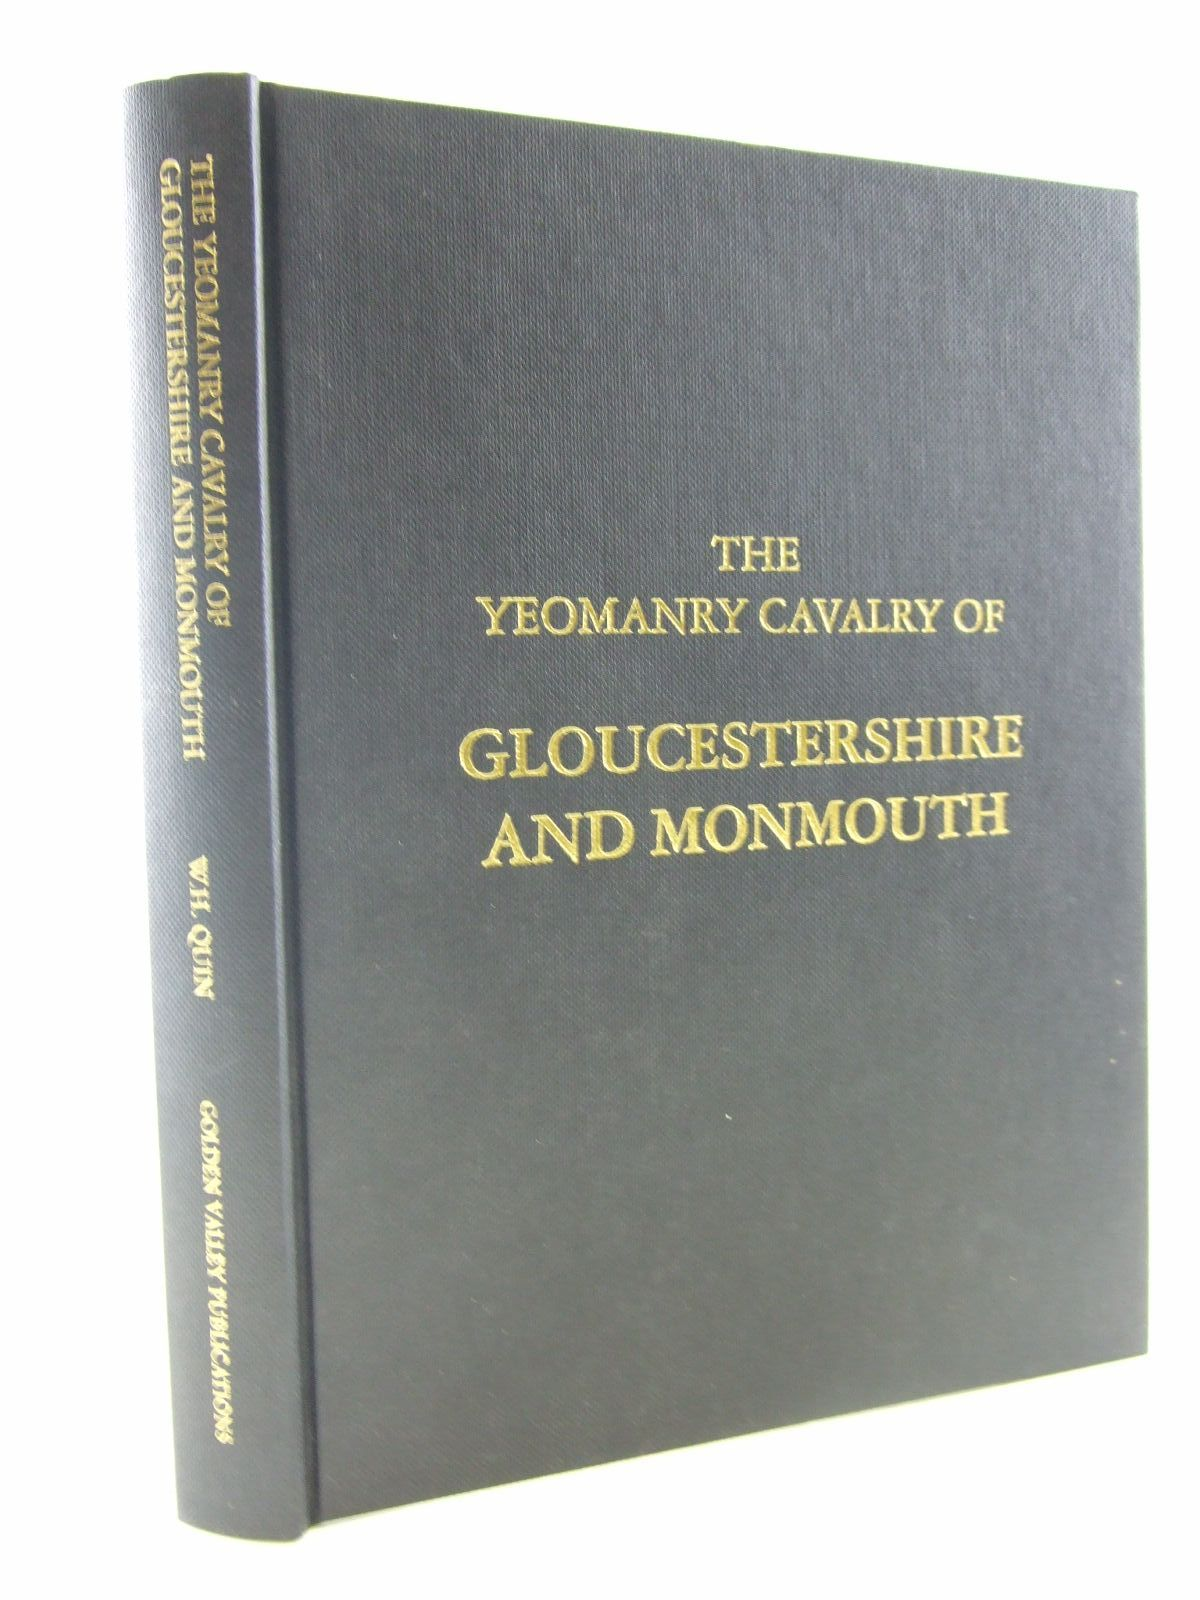 Photo of THE YEOMANRY CAVALRY OF GLOUCESTERSHIRE AND MONMOUTH written by Quin, W.H. Wyndham published by Golden Valley Publications (STOCK CODE: 2108680)  for sale by Stella & Rose's Books